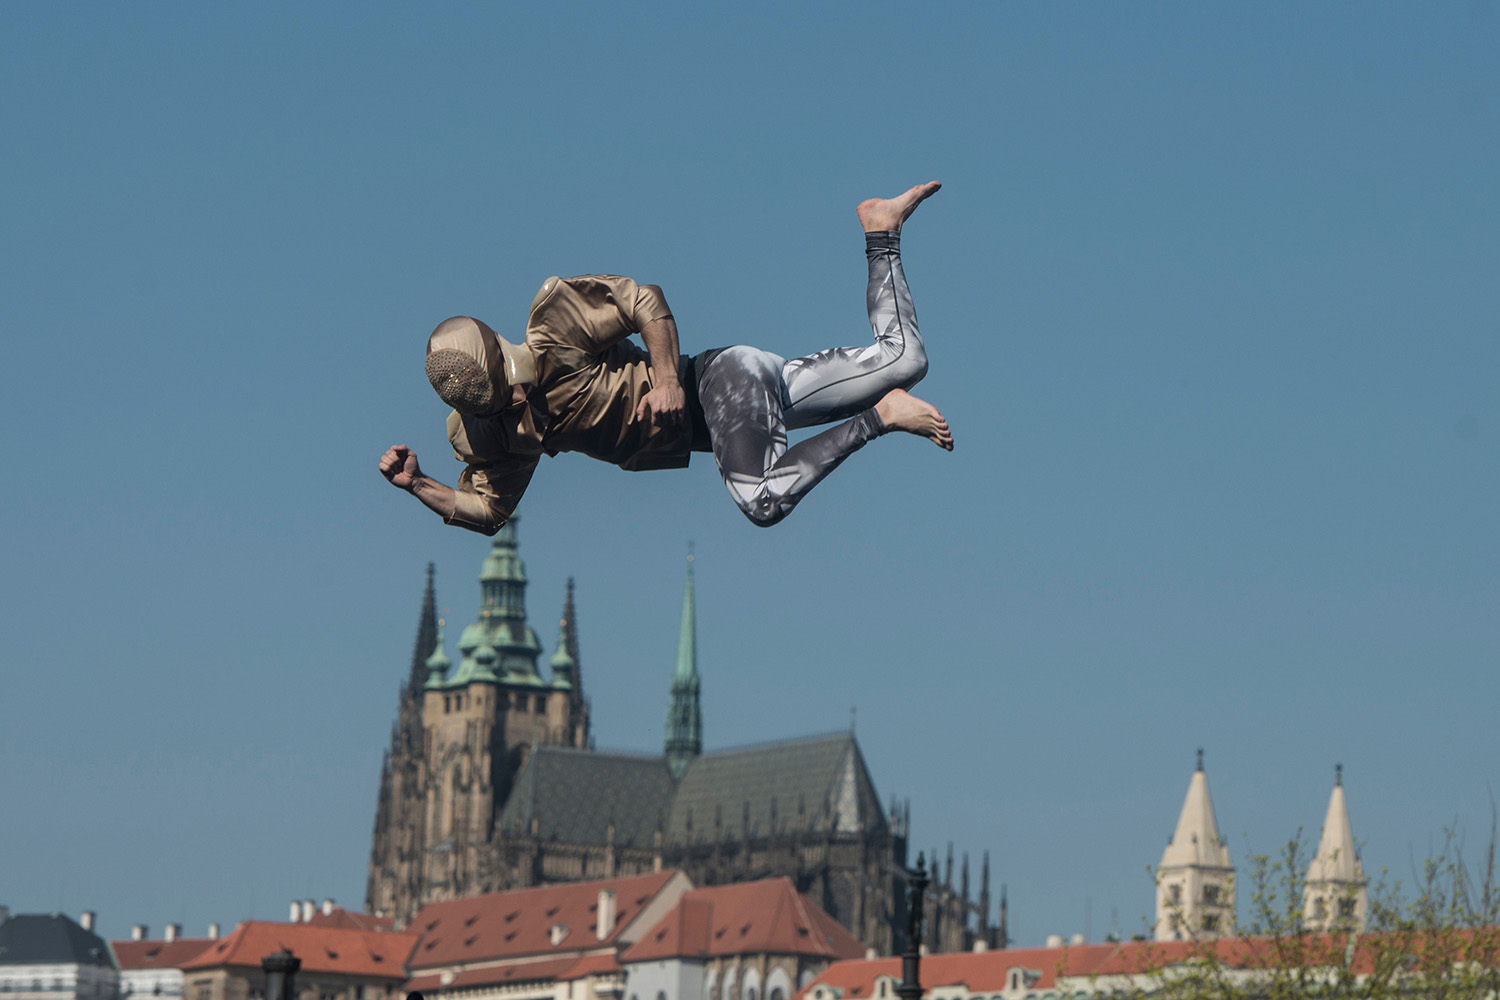 A street artist soars through the air after jumping off a trampoline in Prague on April 9. MICHAL CIZEK/AFP via Getty Images